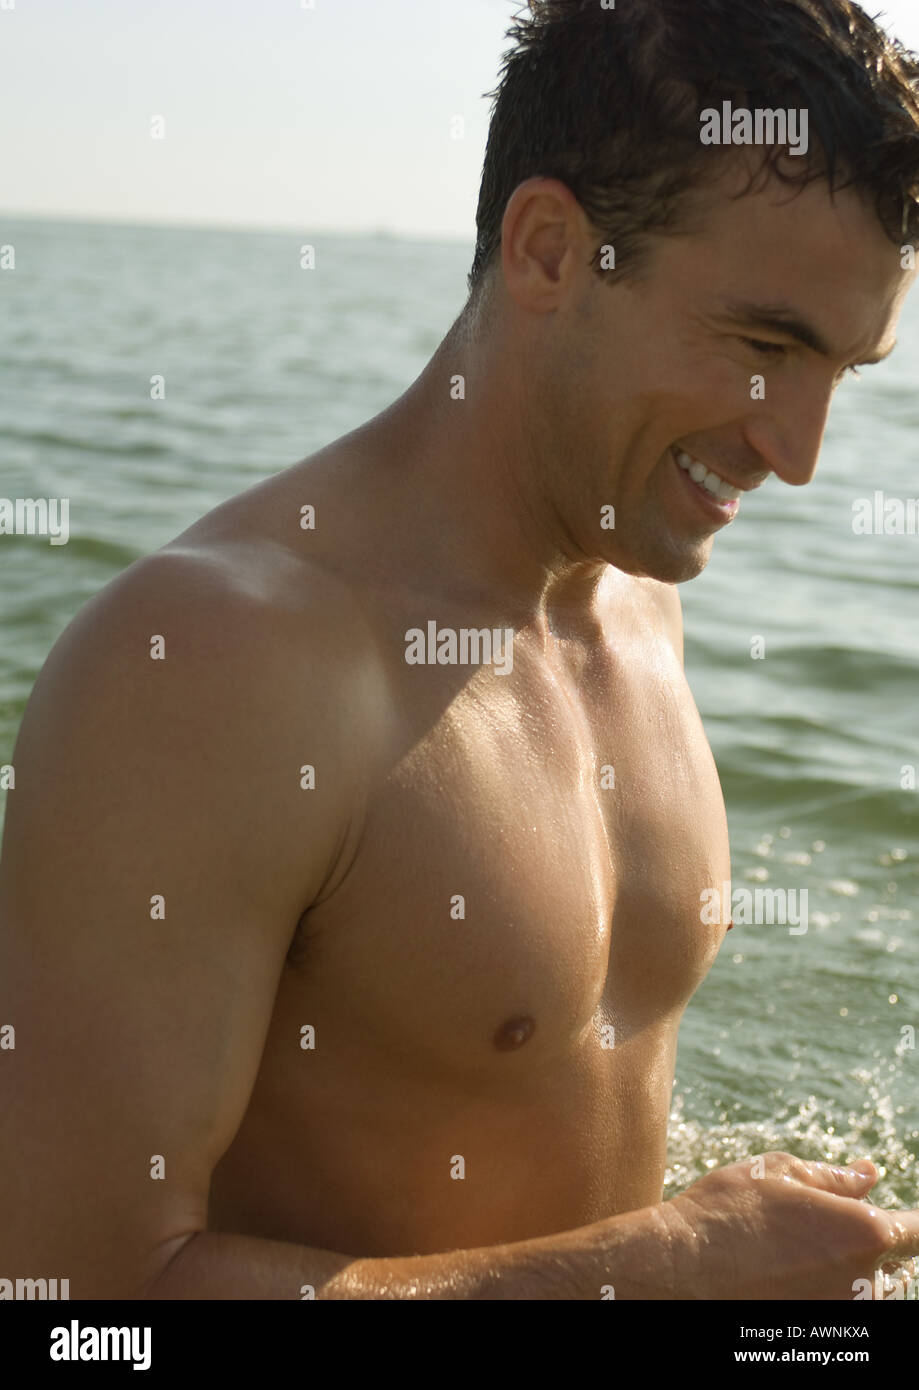 Barechested man, sea in background - Stock Image